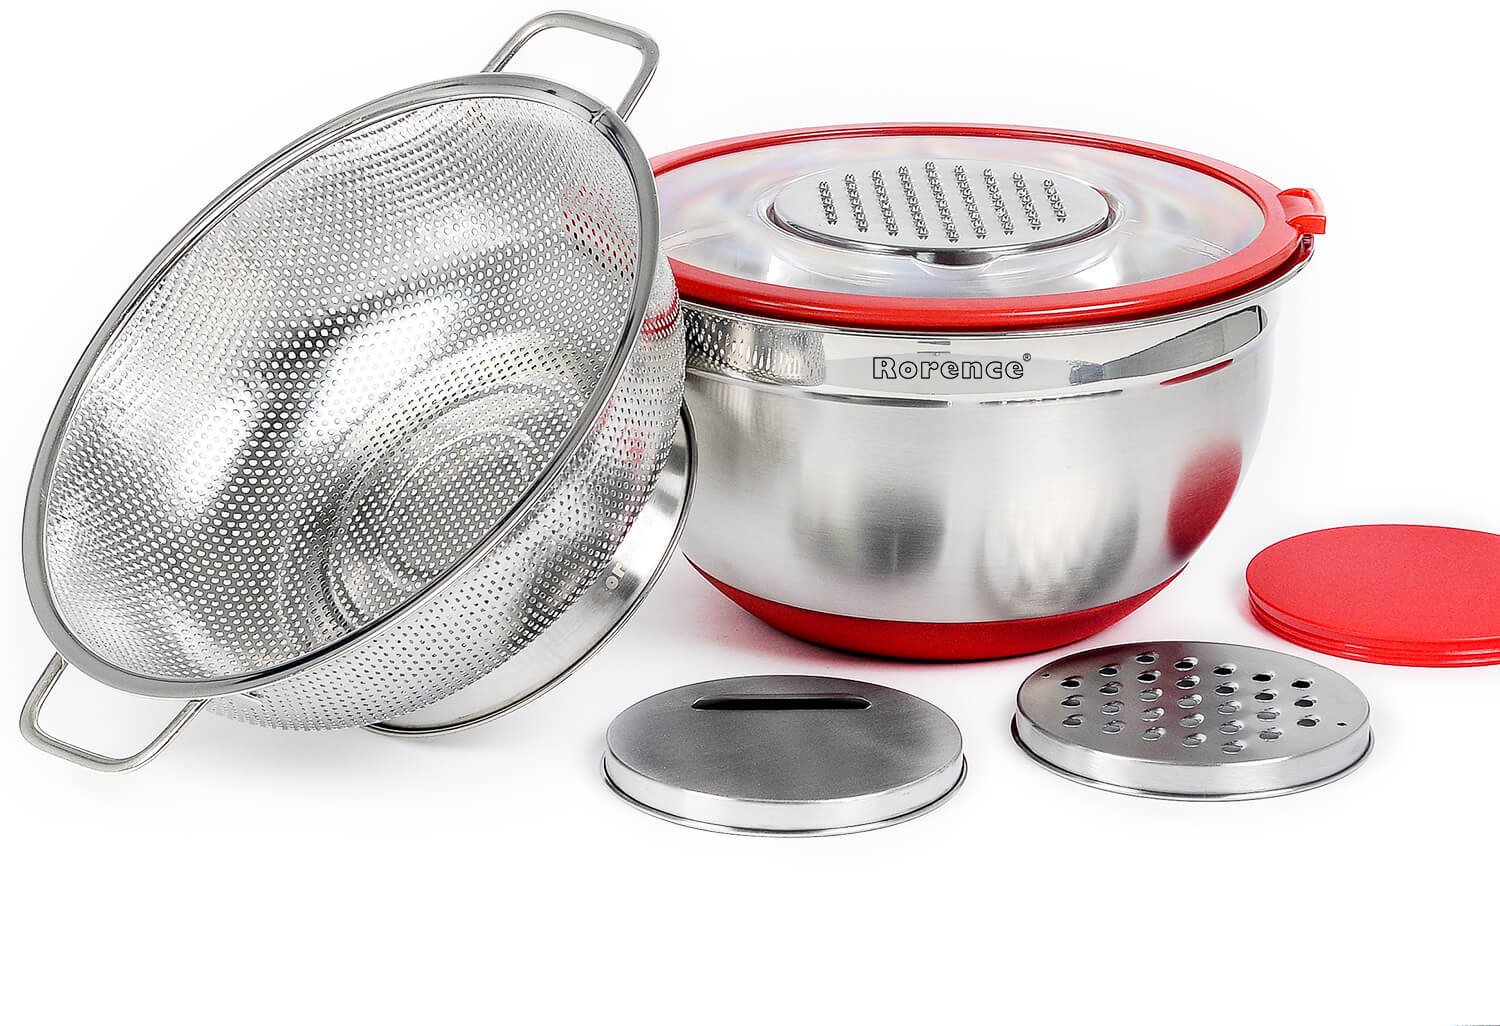 Rorence Stainless Steel Non Skid Mixing Bowl with Transparent Lid & 3 Graters Set with a Free Colander - Red